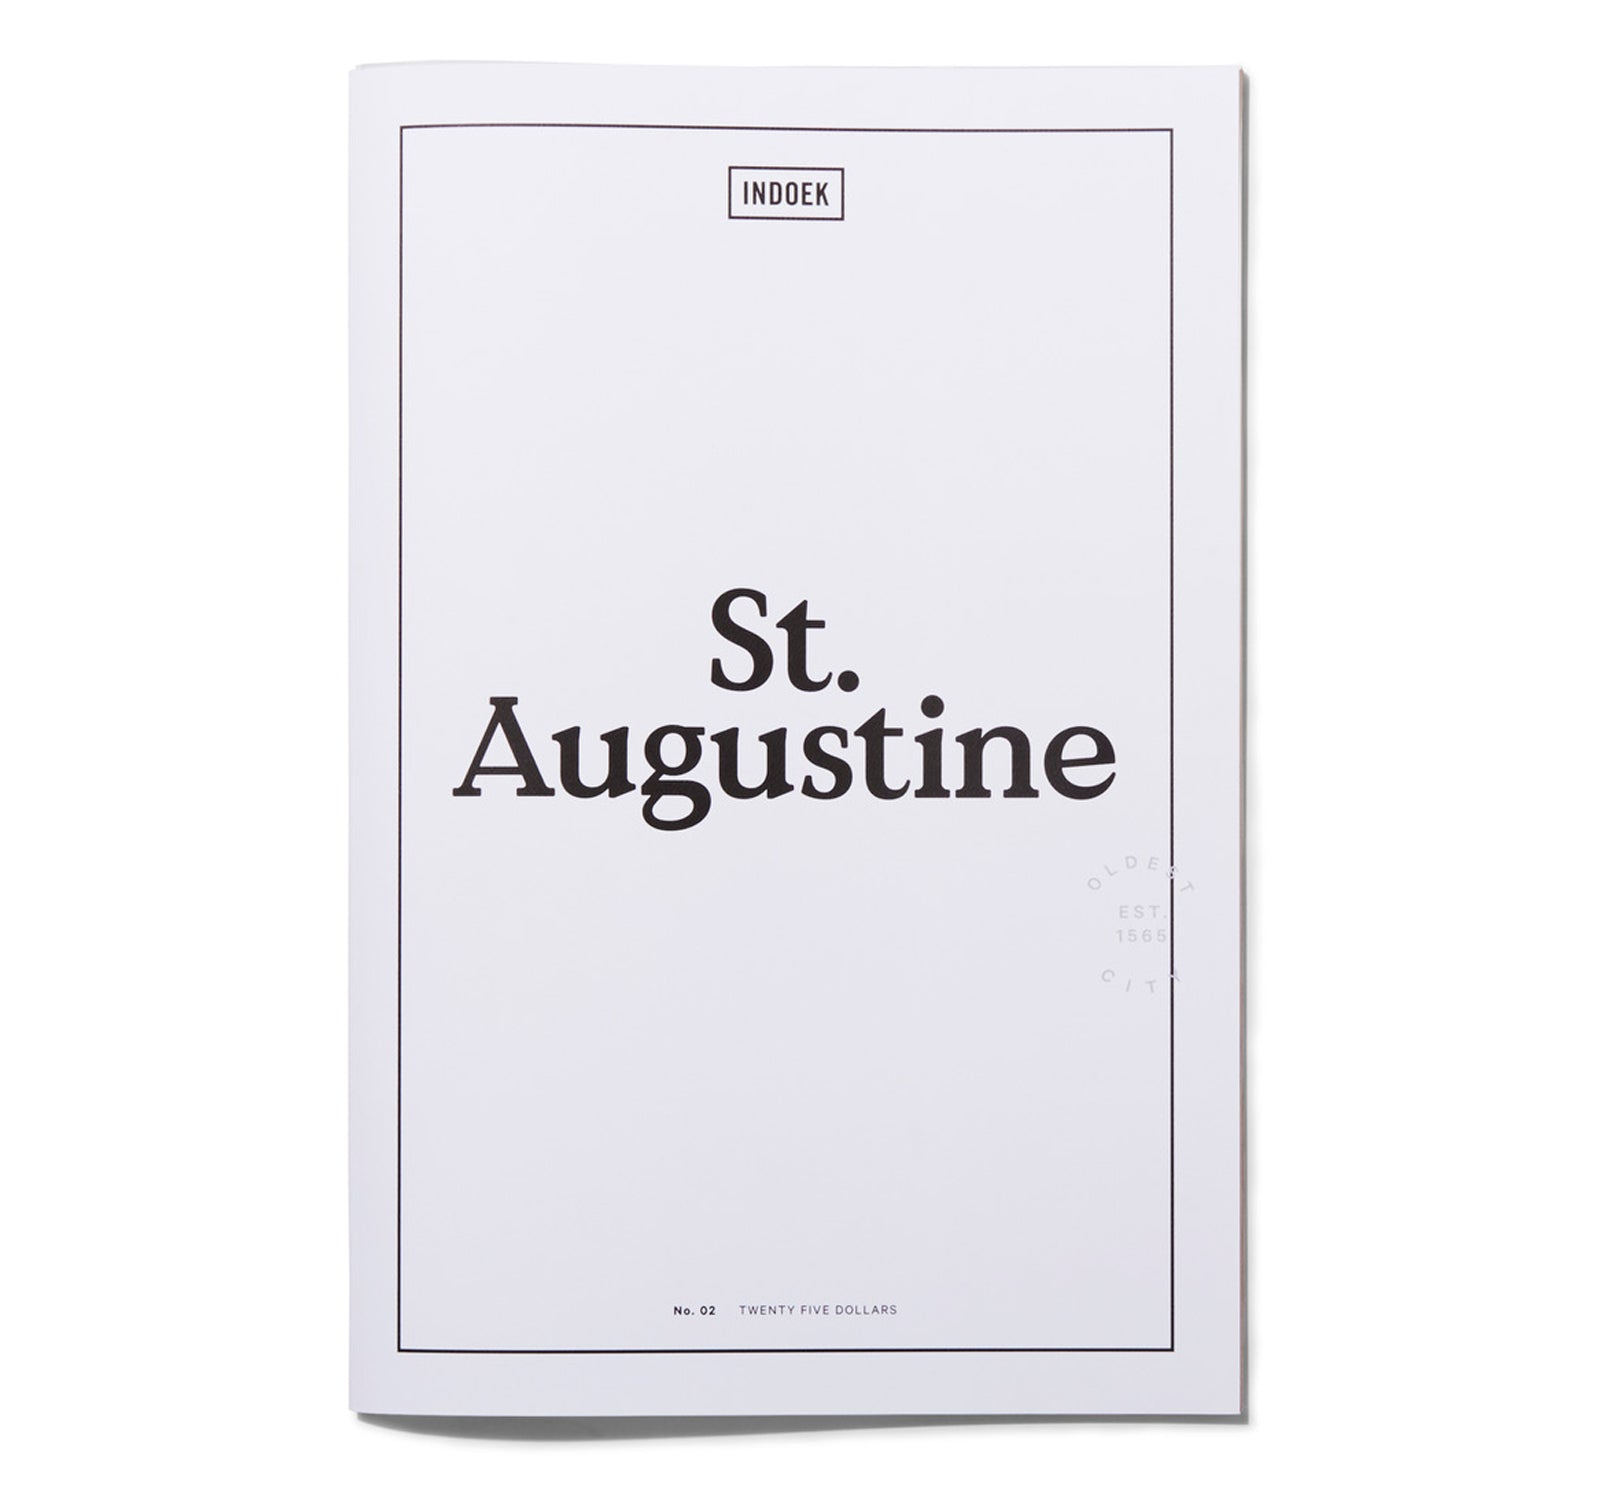 Indoek St. Augustine Issue